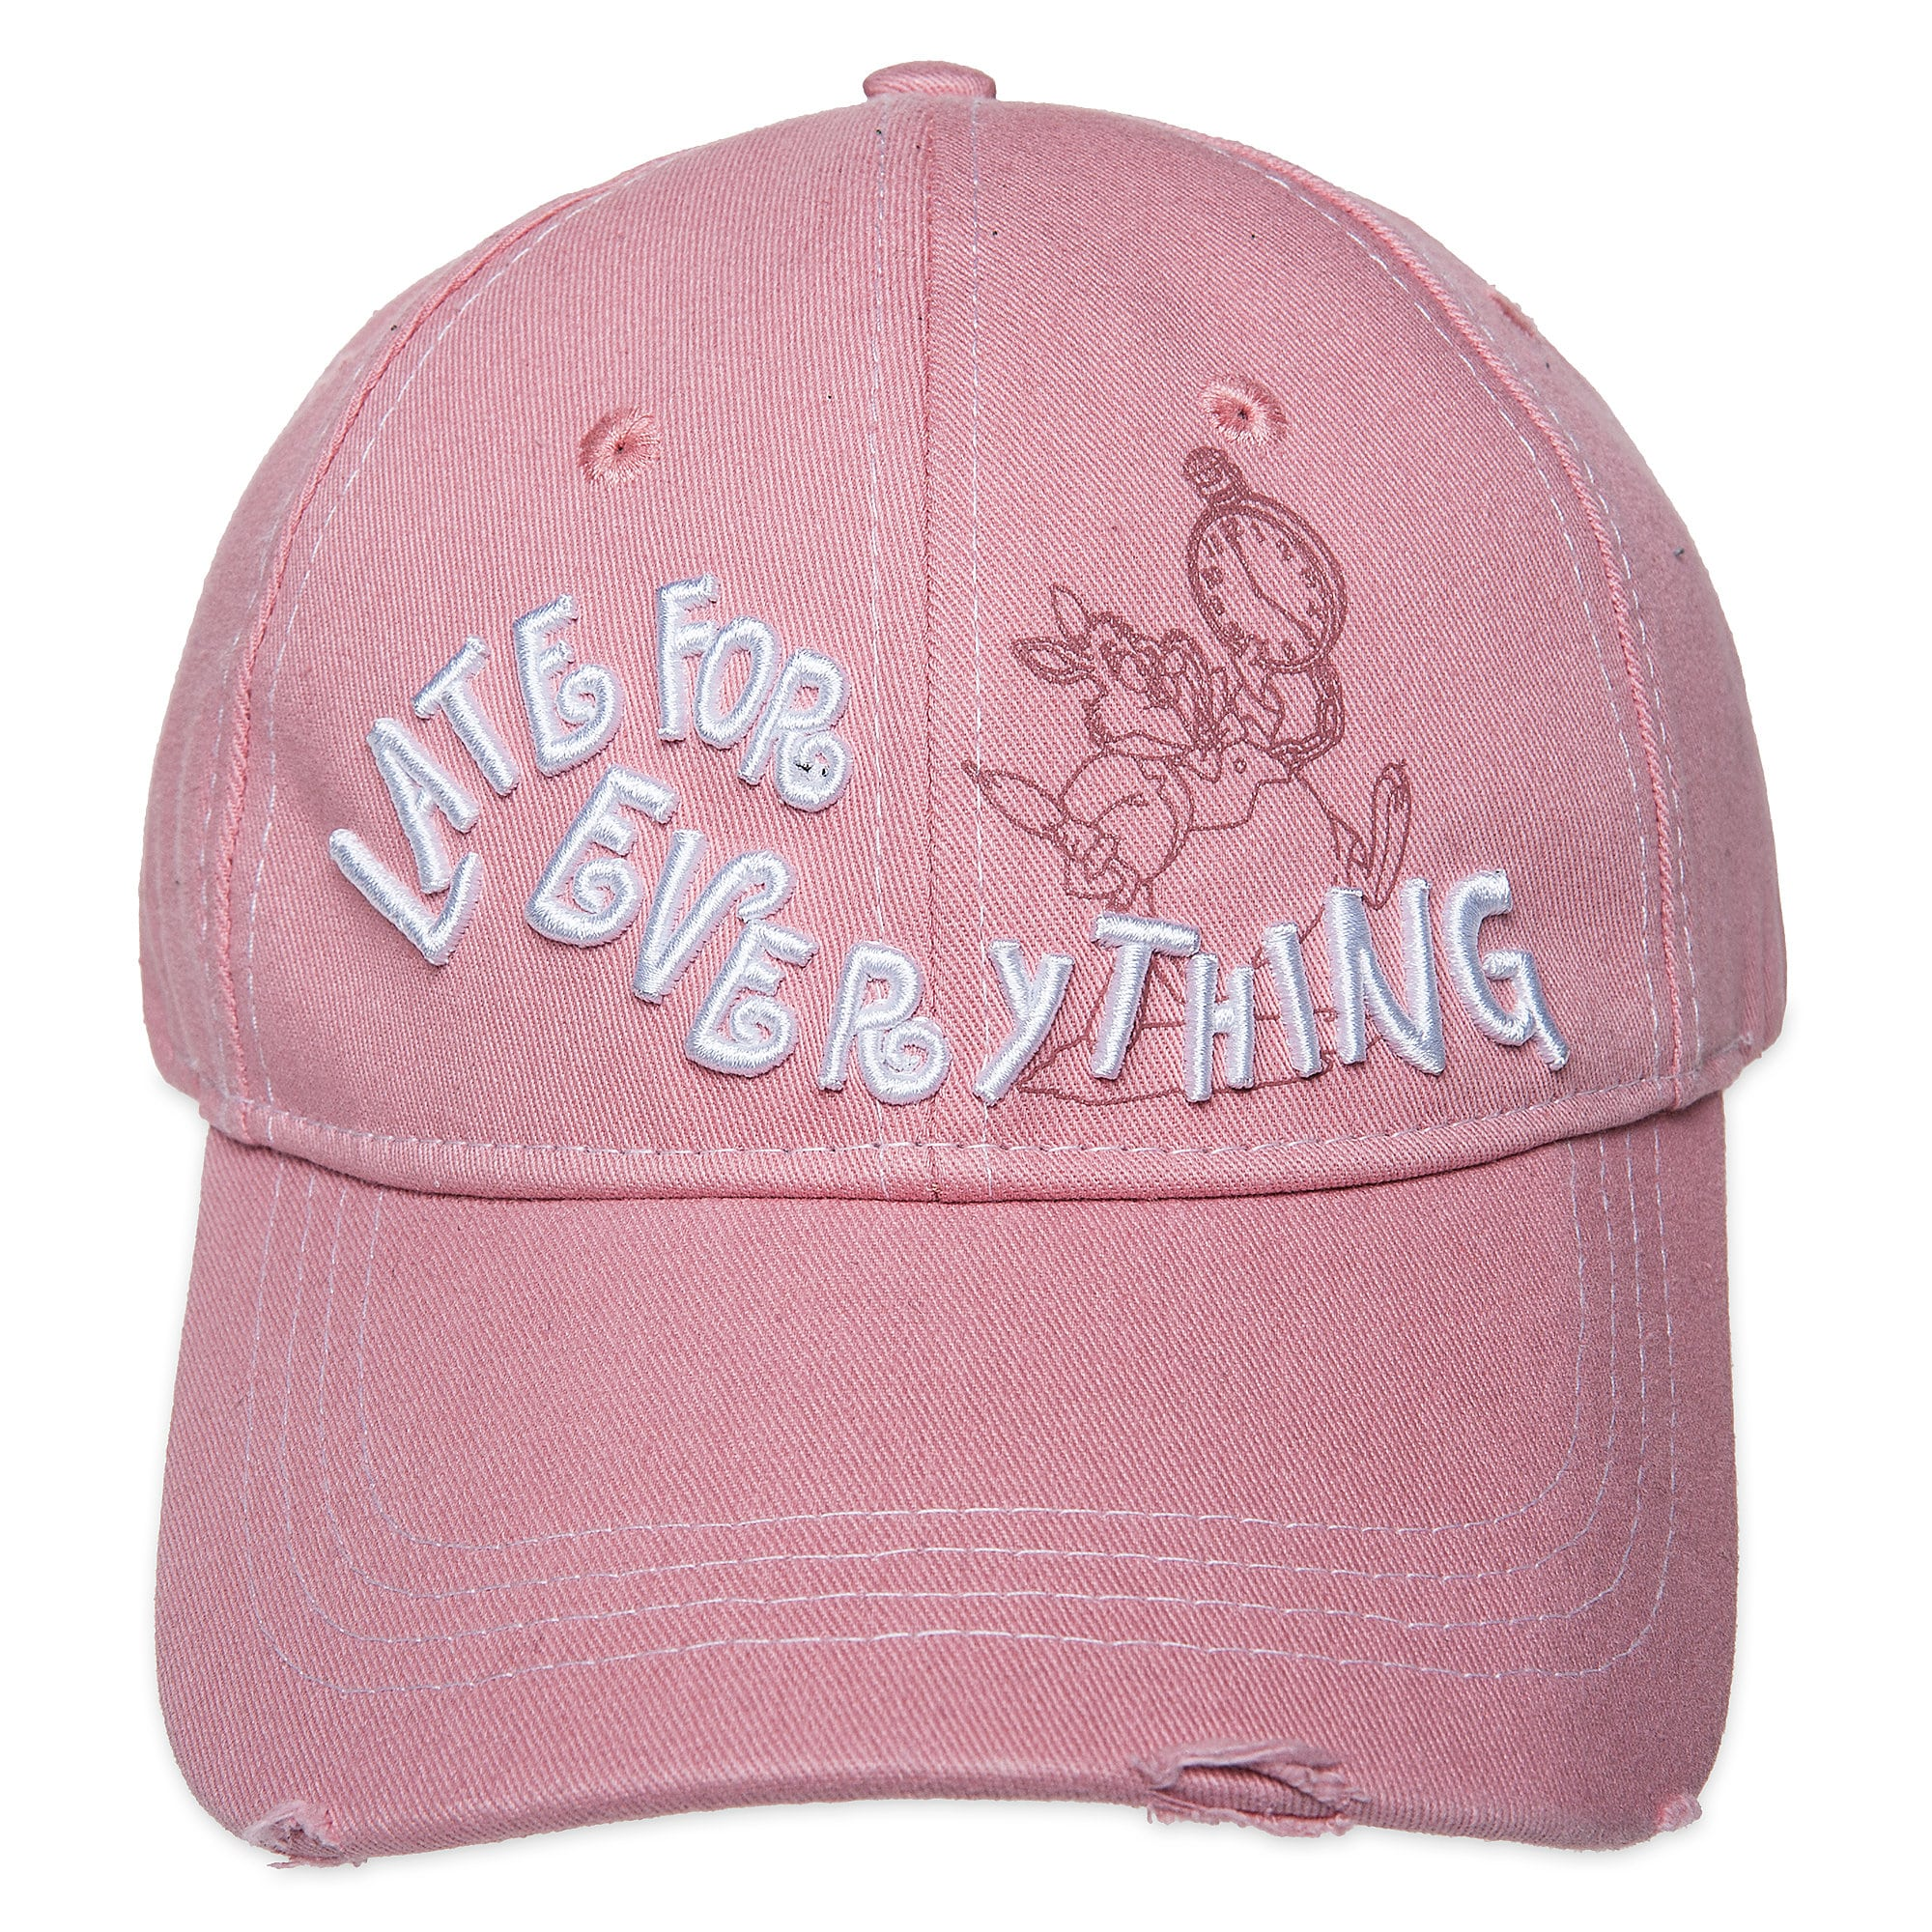 64446fbb2cfc1 White Rabbit   Late For Everything   Baseball Cap for Adults - Alice in  Wonderland